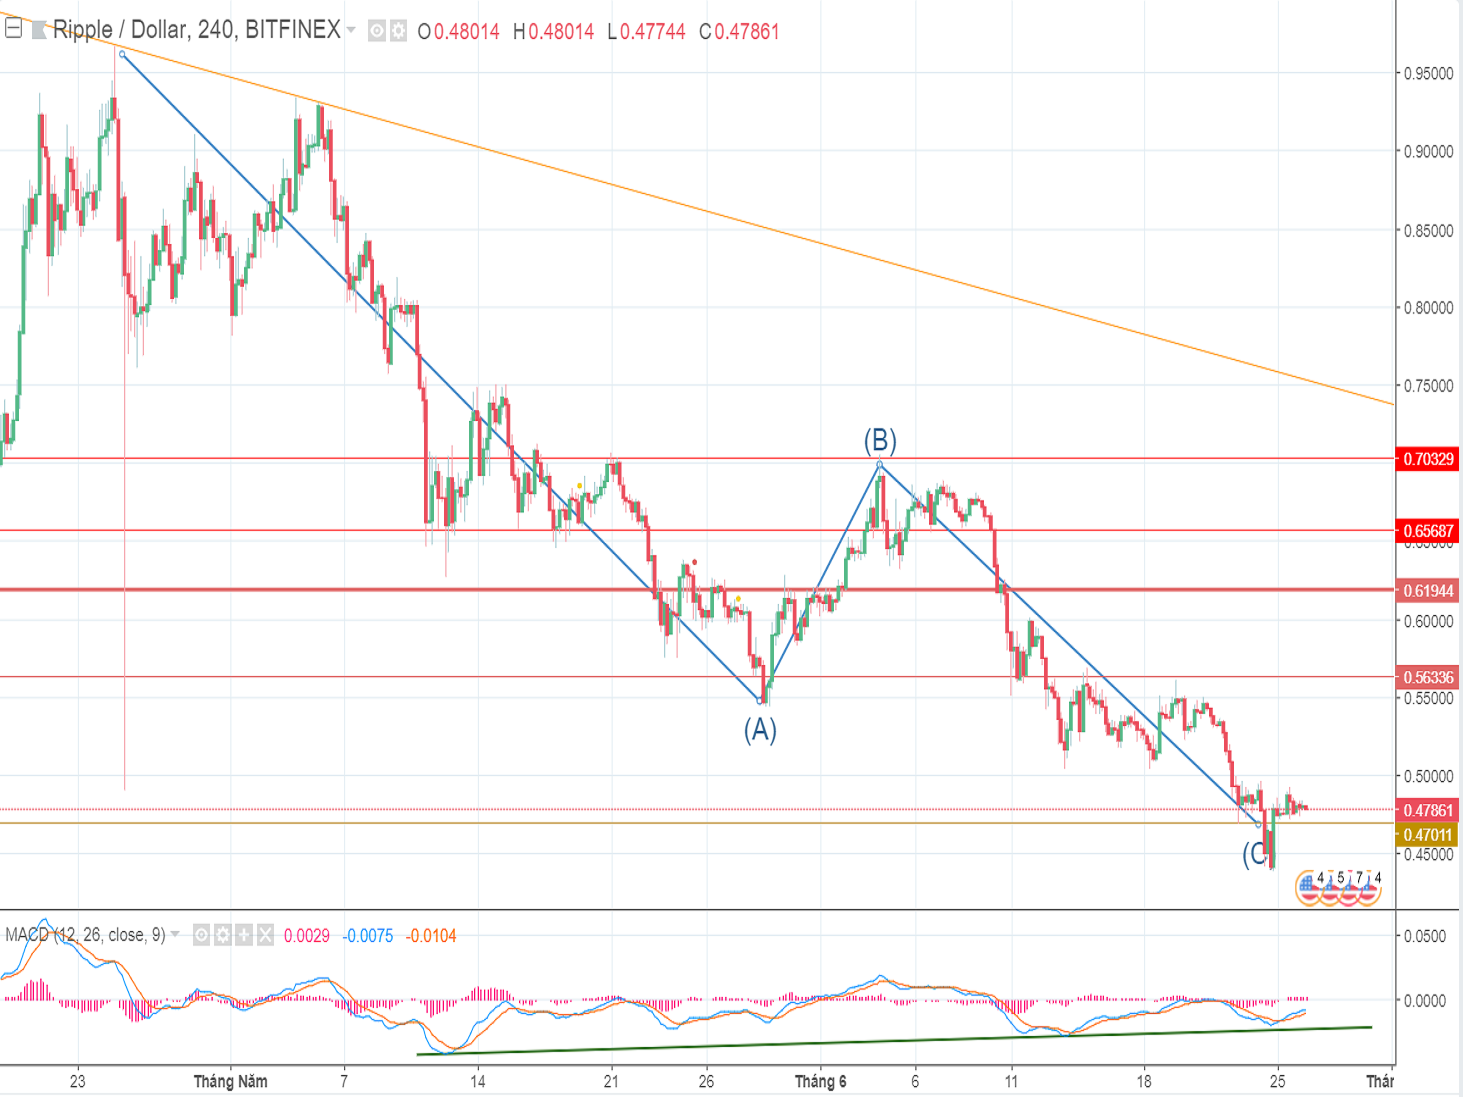 Ripple price analysis and forecast (June 26th): The lowest price recorded in 2018